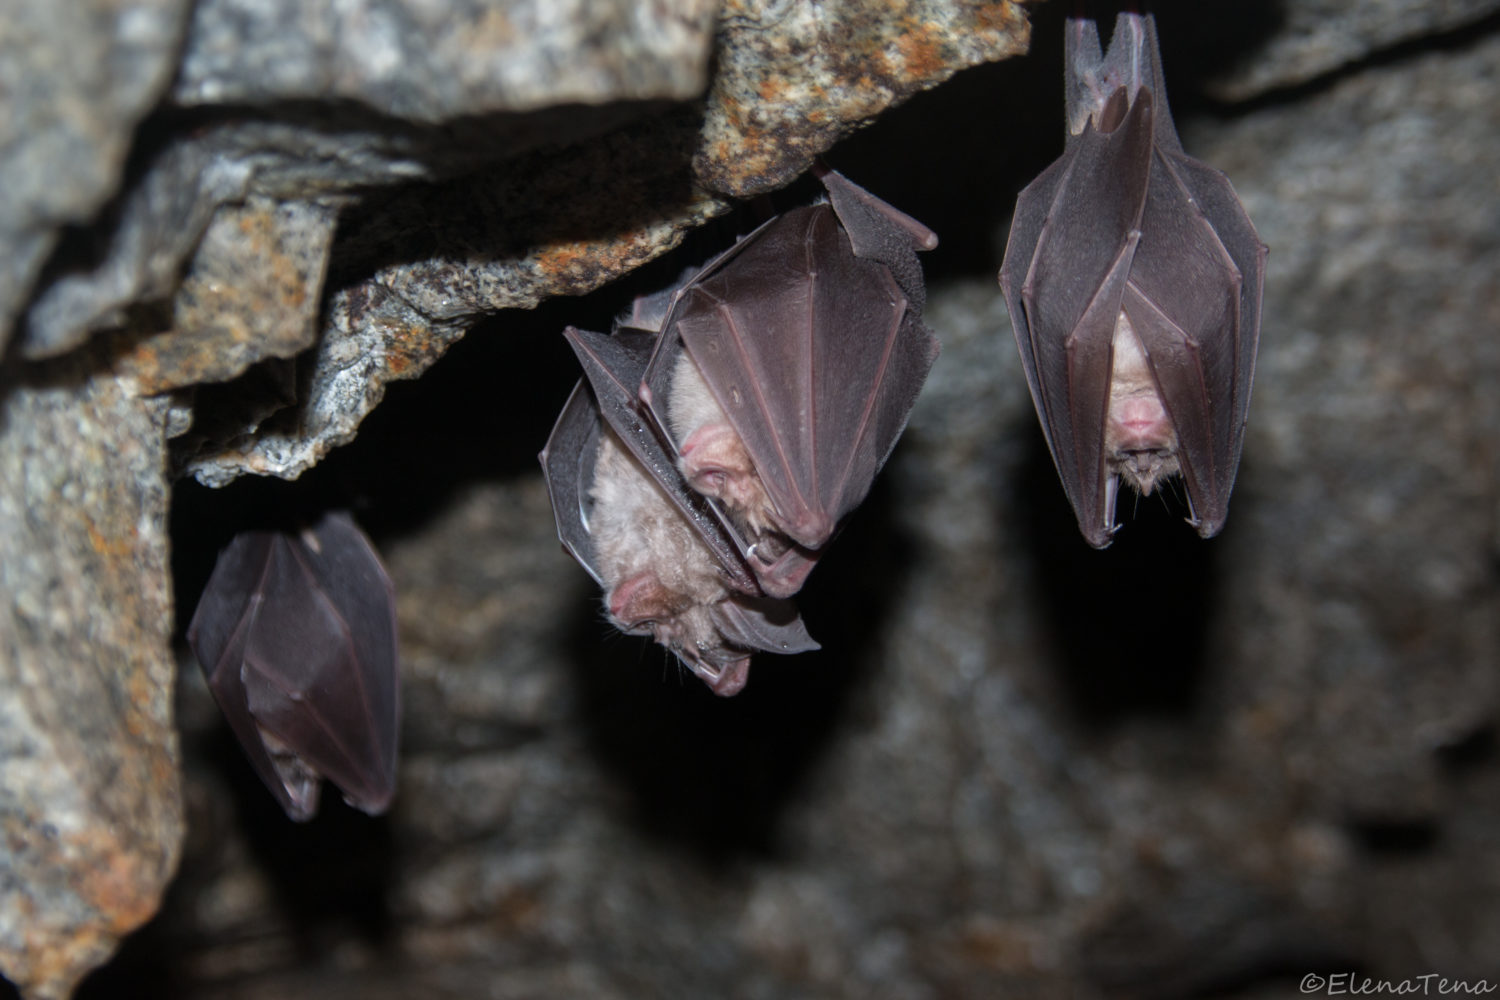 How Bats Relate To The Outbreak Of The Severe Acute